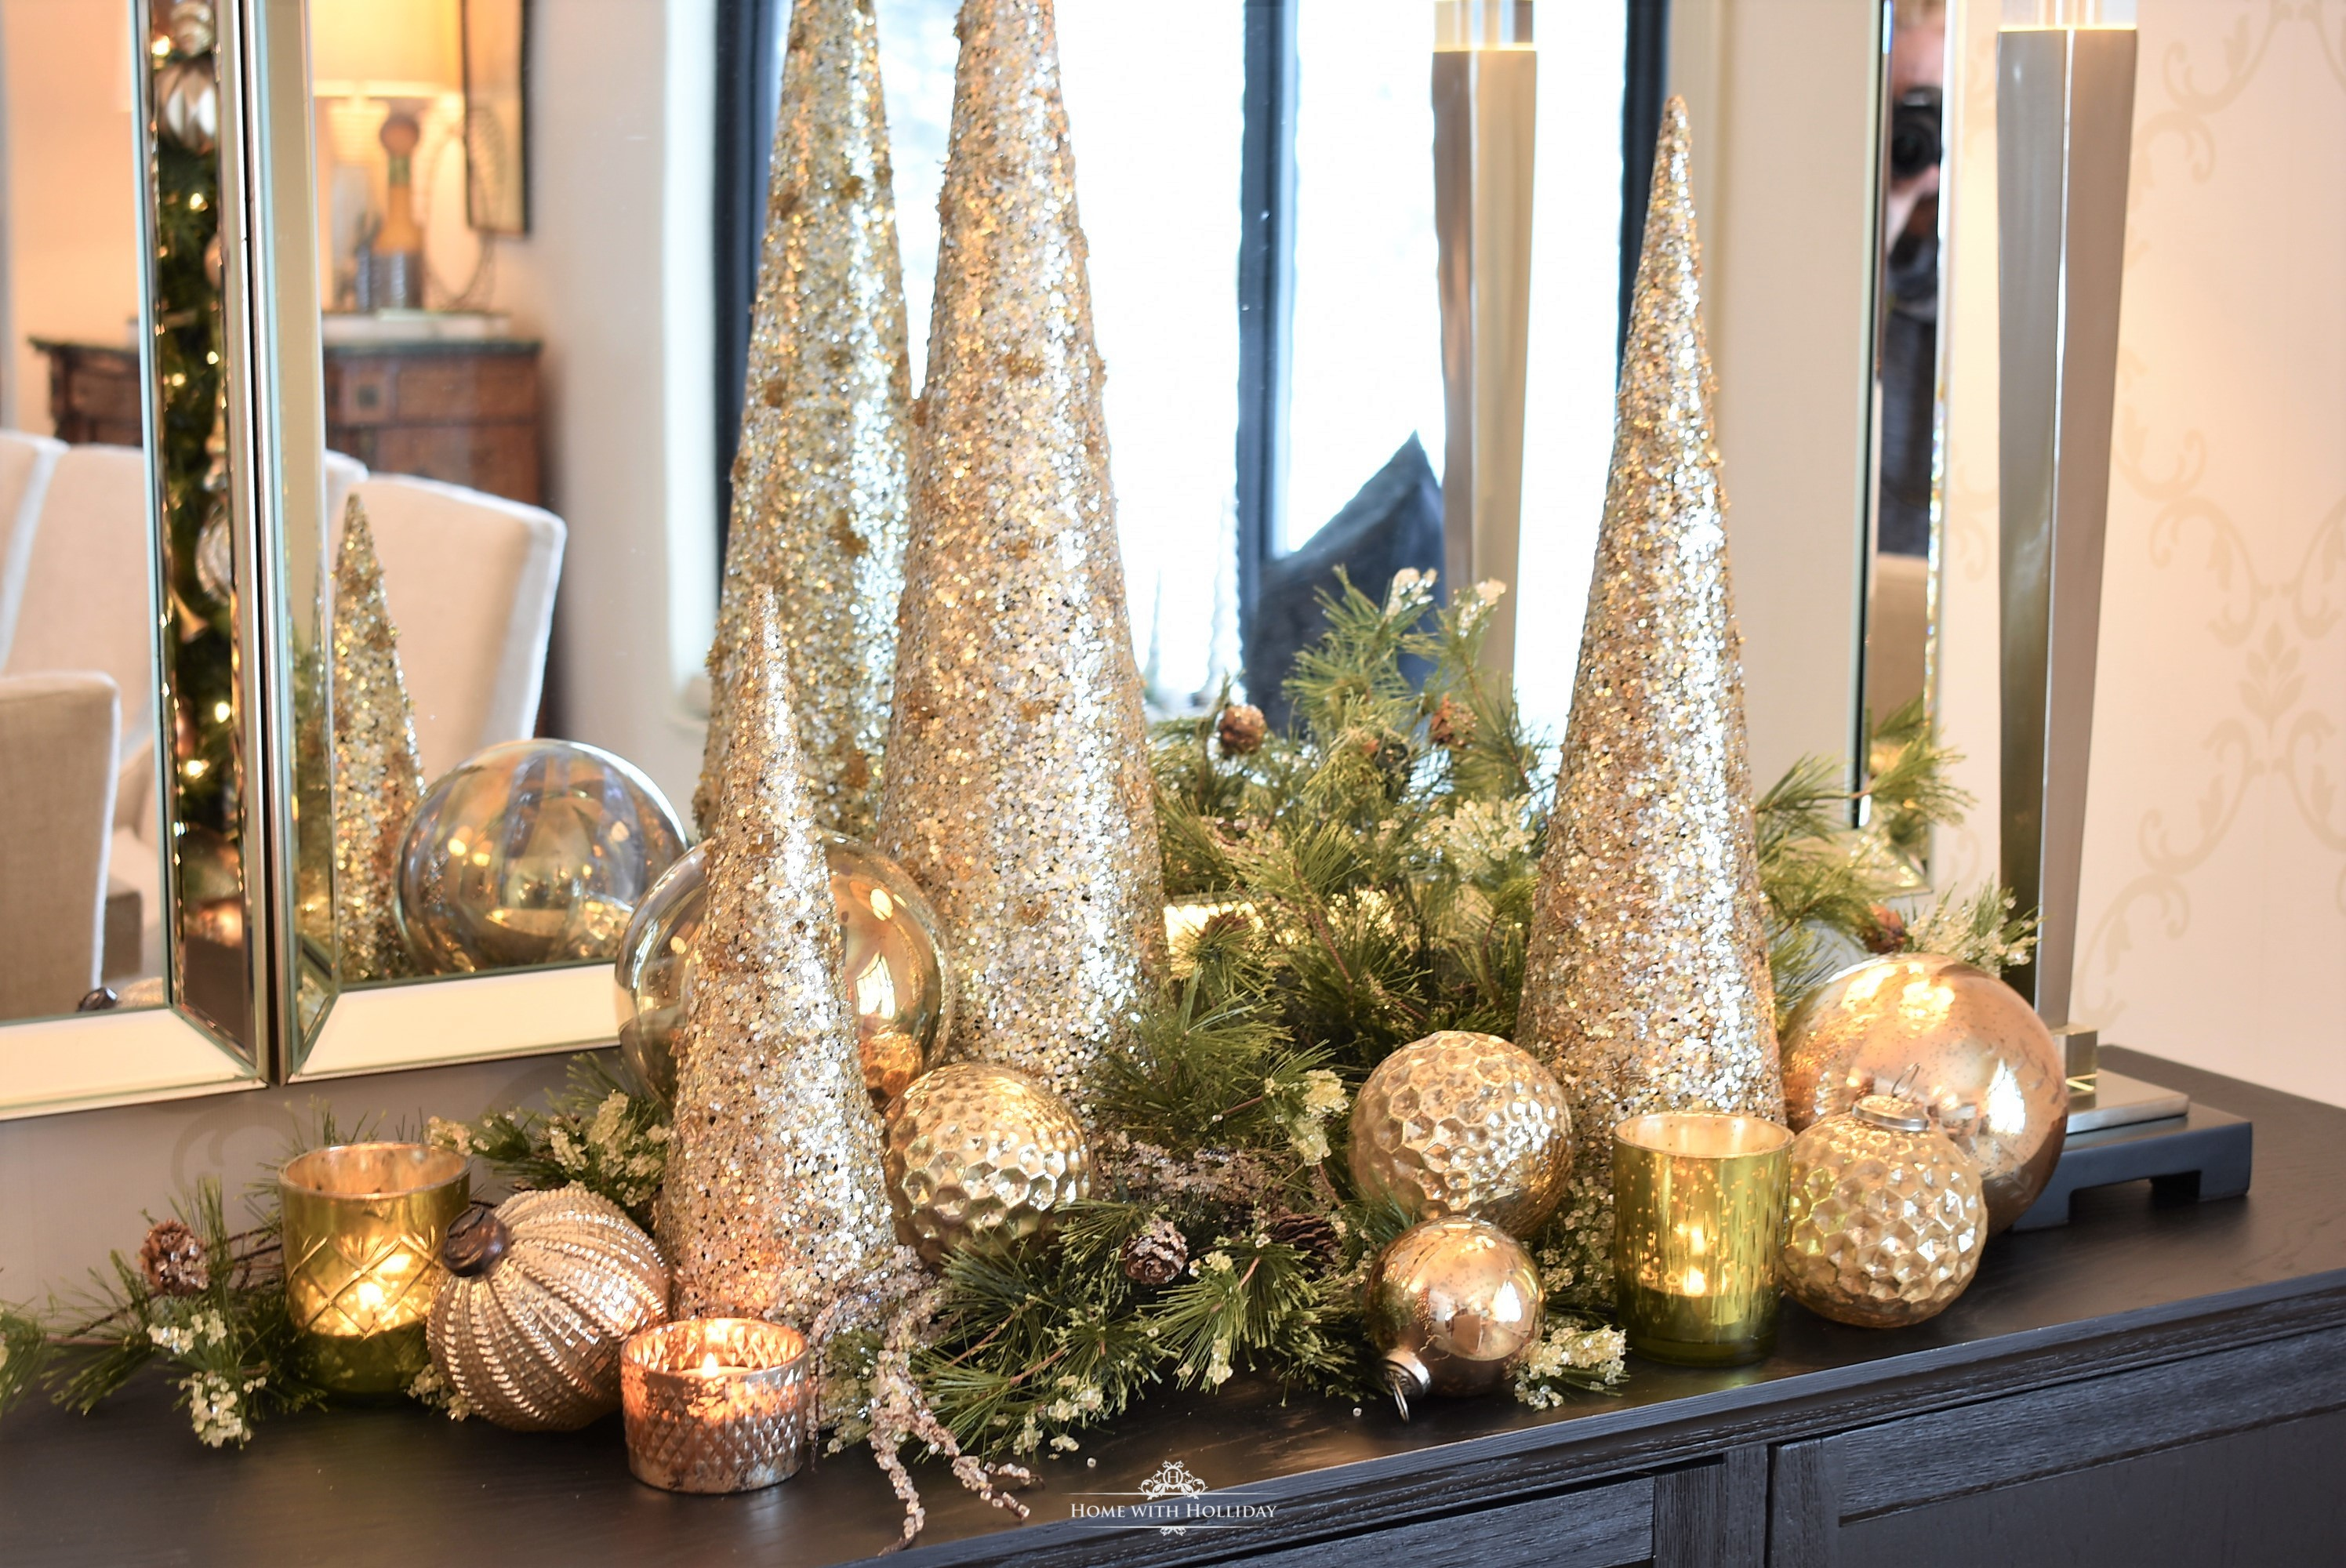 My Top Ten Posts of 2018 - Silver and Gold Glam Centerpiece - Home with Holliday